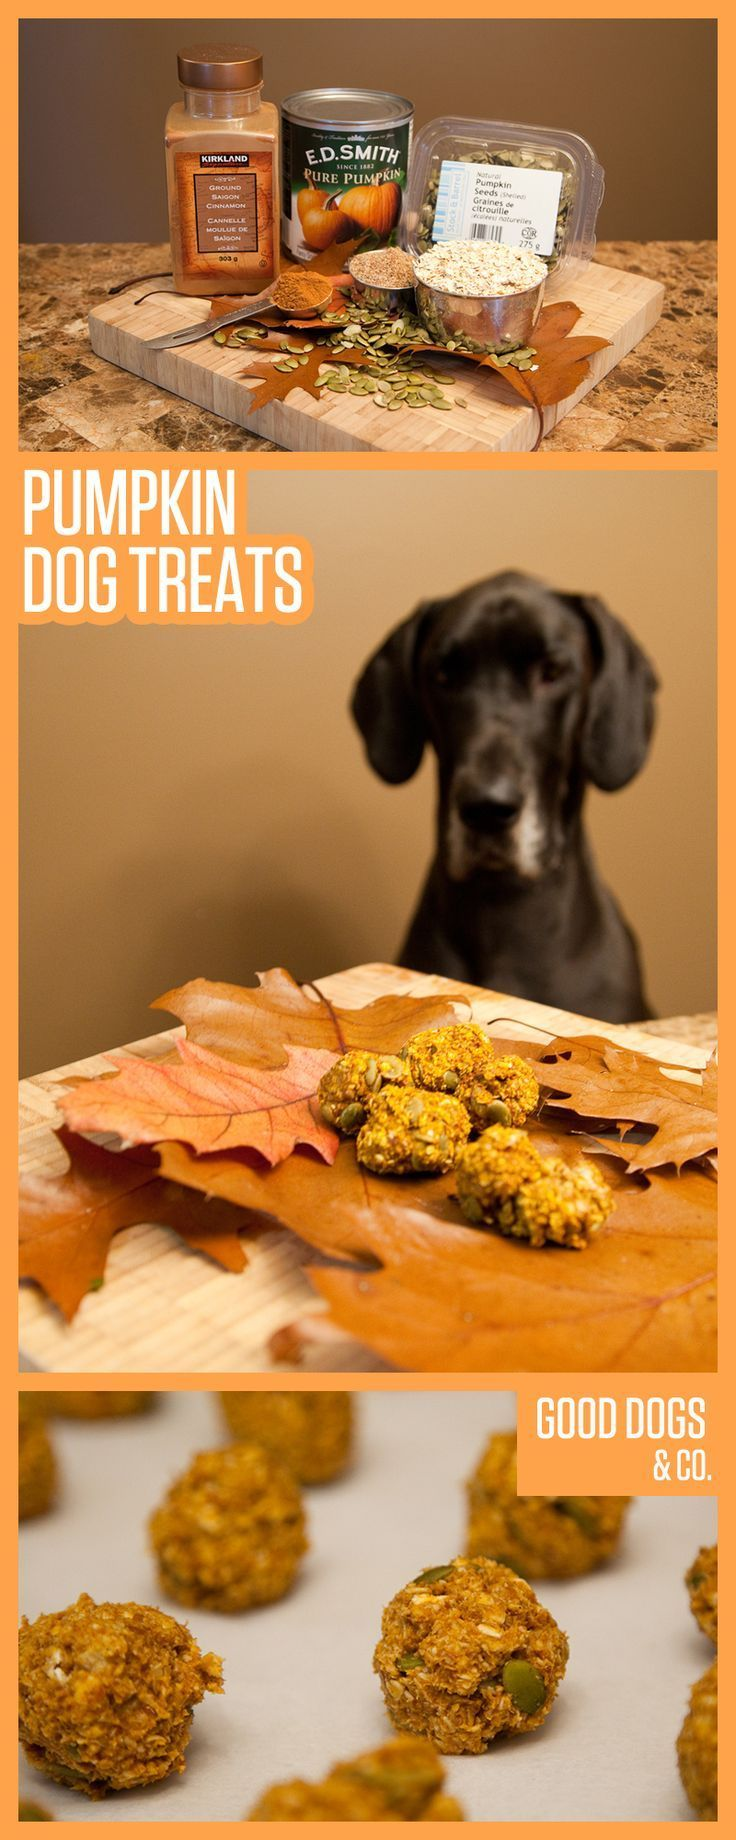 Pumpkin Dog Treats - Did you know pumpkin puree AND pumpkin seeds are safe and healthy options for your pup? These treats have all that good stuff and more!